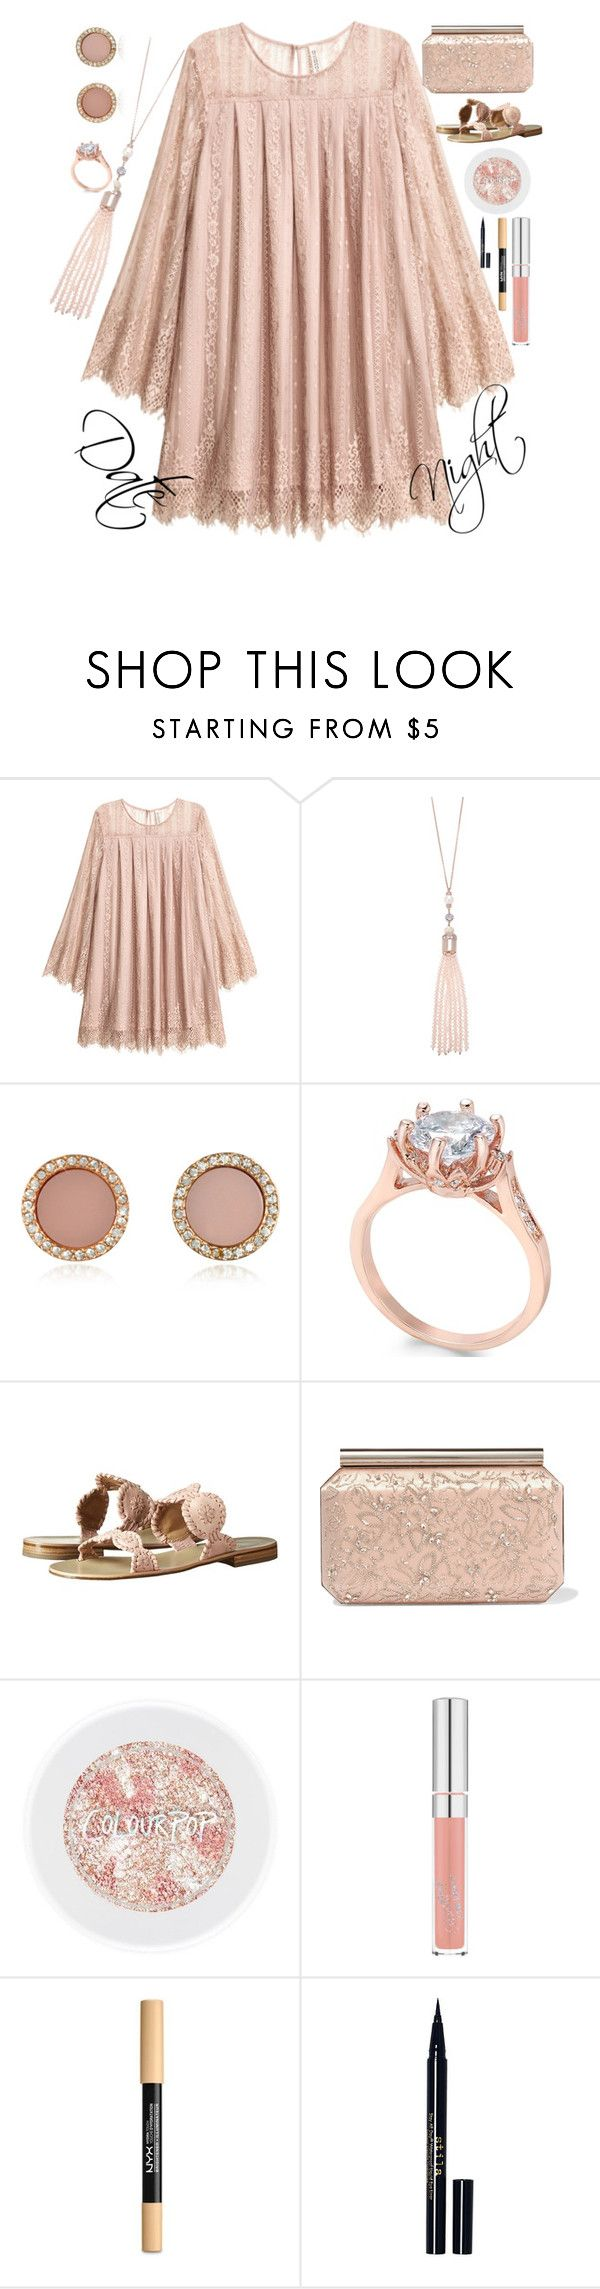 """Date Night Contest"" by bowhunter1498702 ❤ liked on Polyvore featuring Oasis, Michael Kors, Charter Club, Jack Rogers, Oscar de la Renta, NYX and Stila"